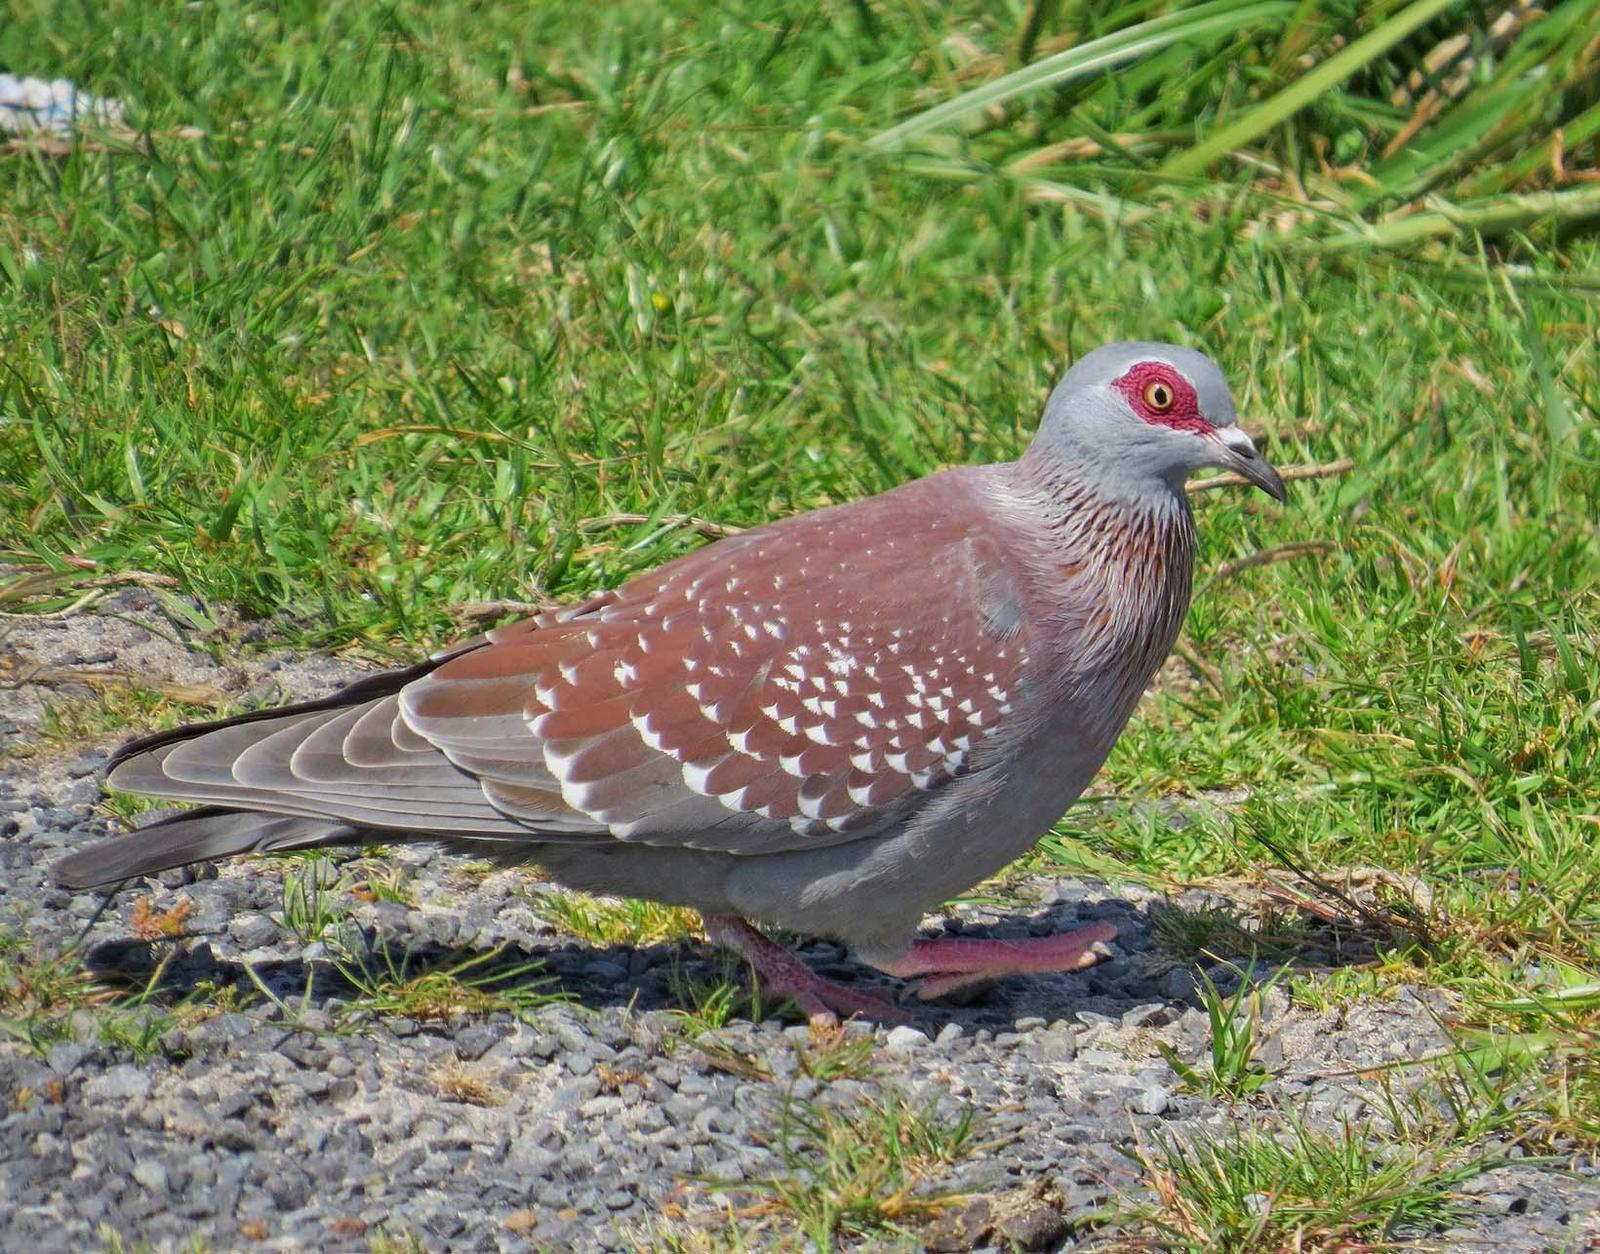 Speckled Pigeon Photo by Peter Boesman